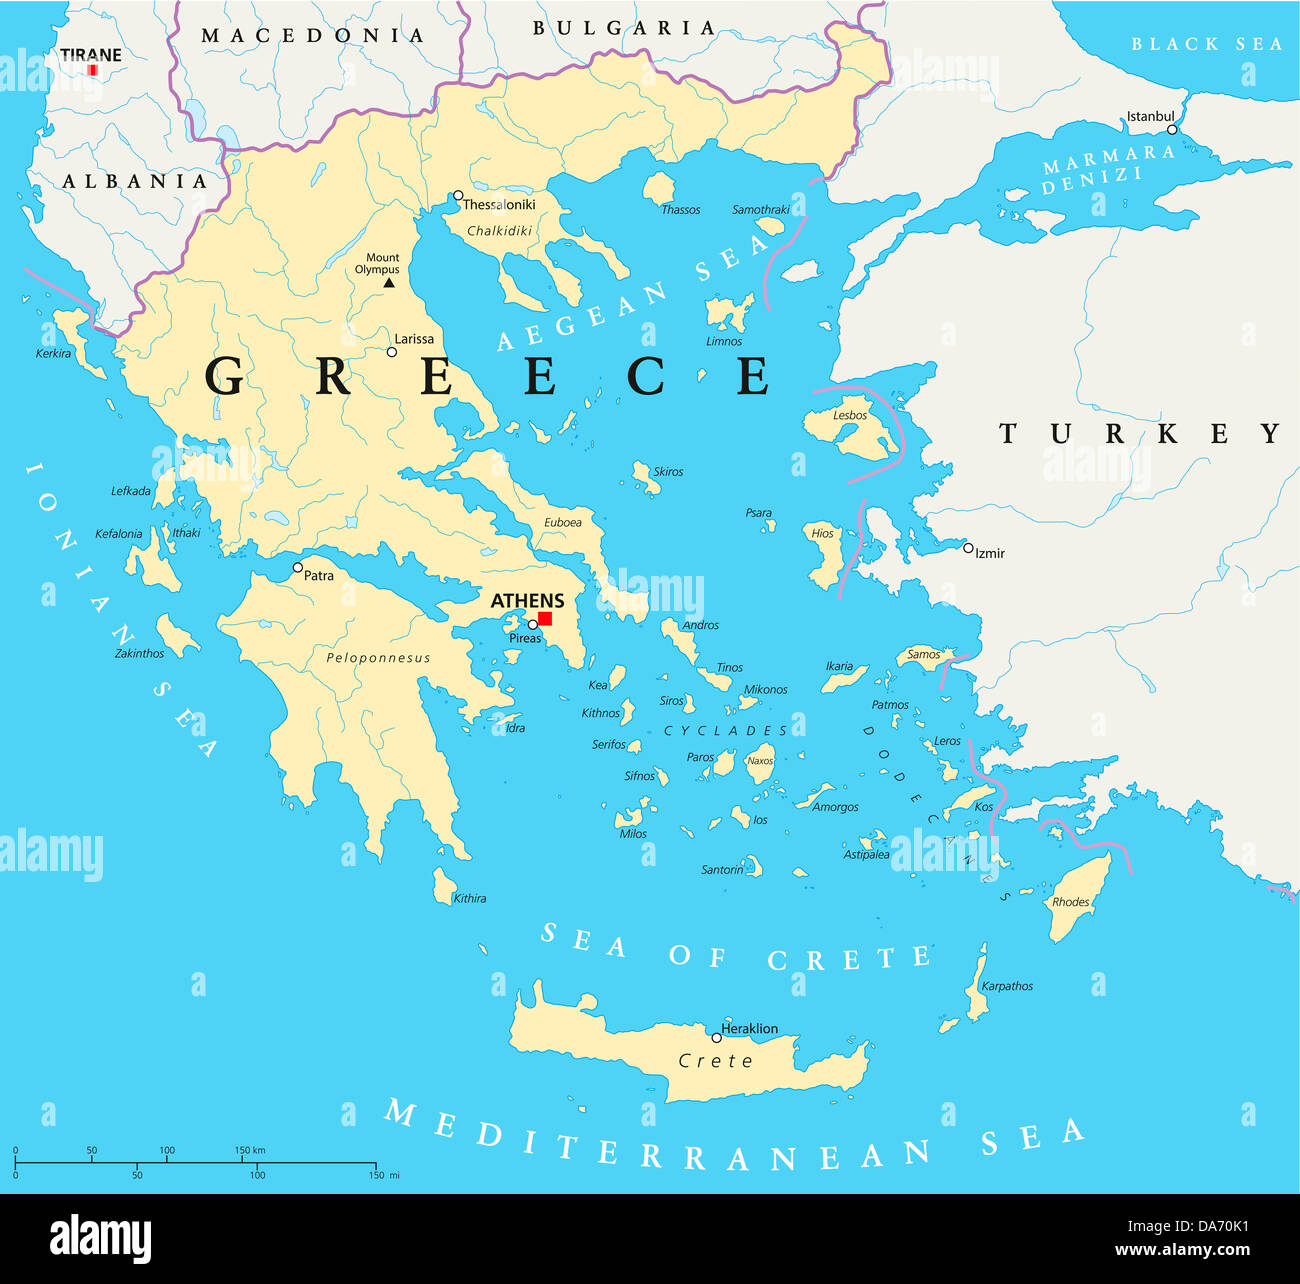 Greece Political Map Stock Photo: 57931861 - Alamy on region of greece, home of greece, greek monasteries of greece, cartogram of greece, state flag of greece, geography of greece, animals of greece, contour line of greece, landform of greece, legend of greece, detailed map greece, ptolemy of greece, greek in greece, globe of greece, world atlas greece, capital of greece, scale of greece, surrounding countries of greece, satellite view of greece, printable map greece,